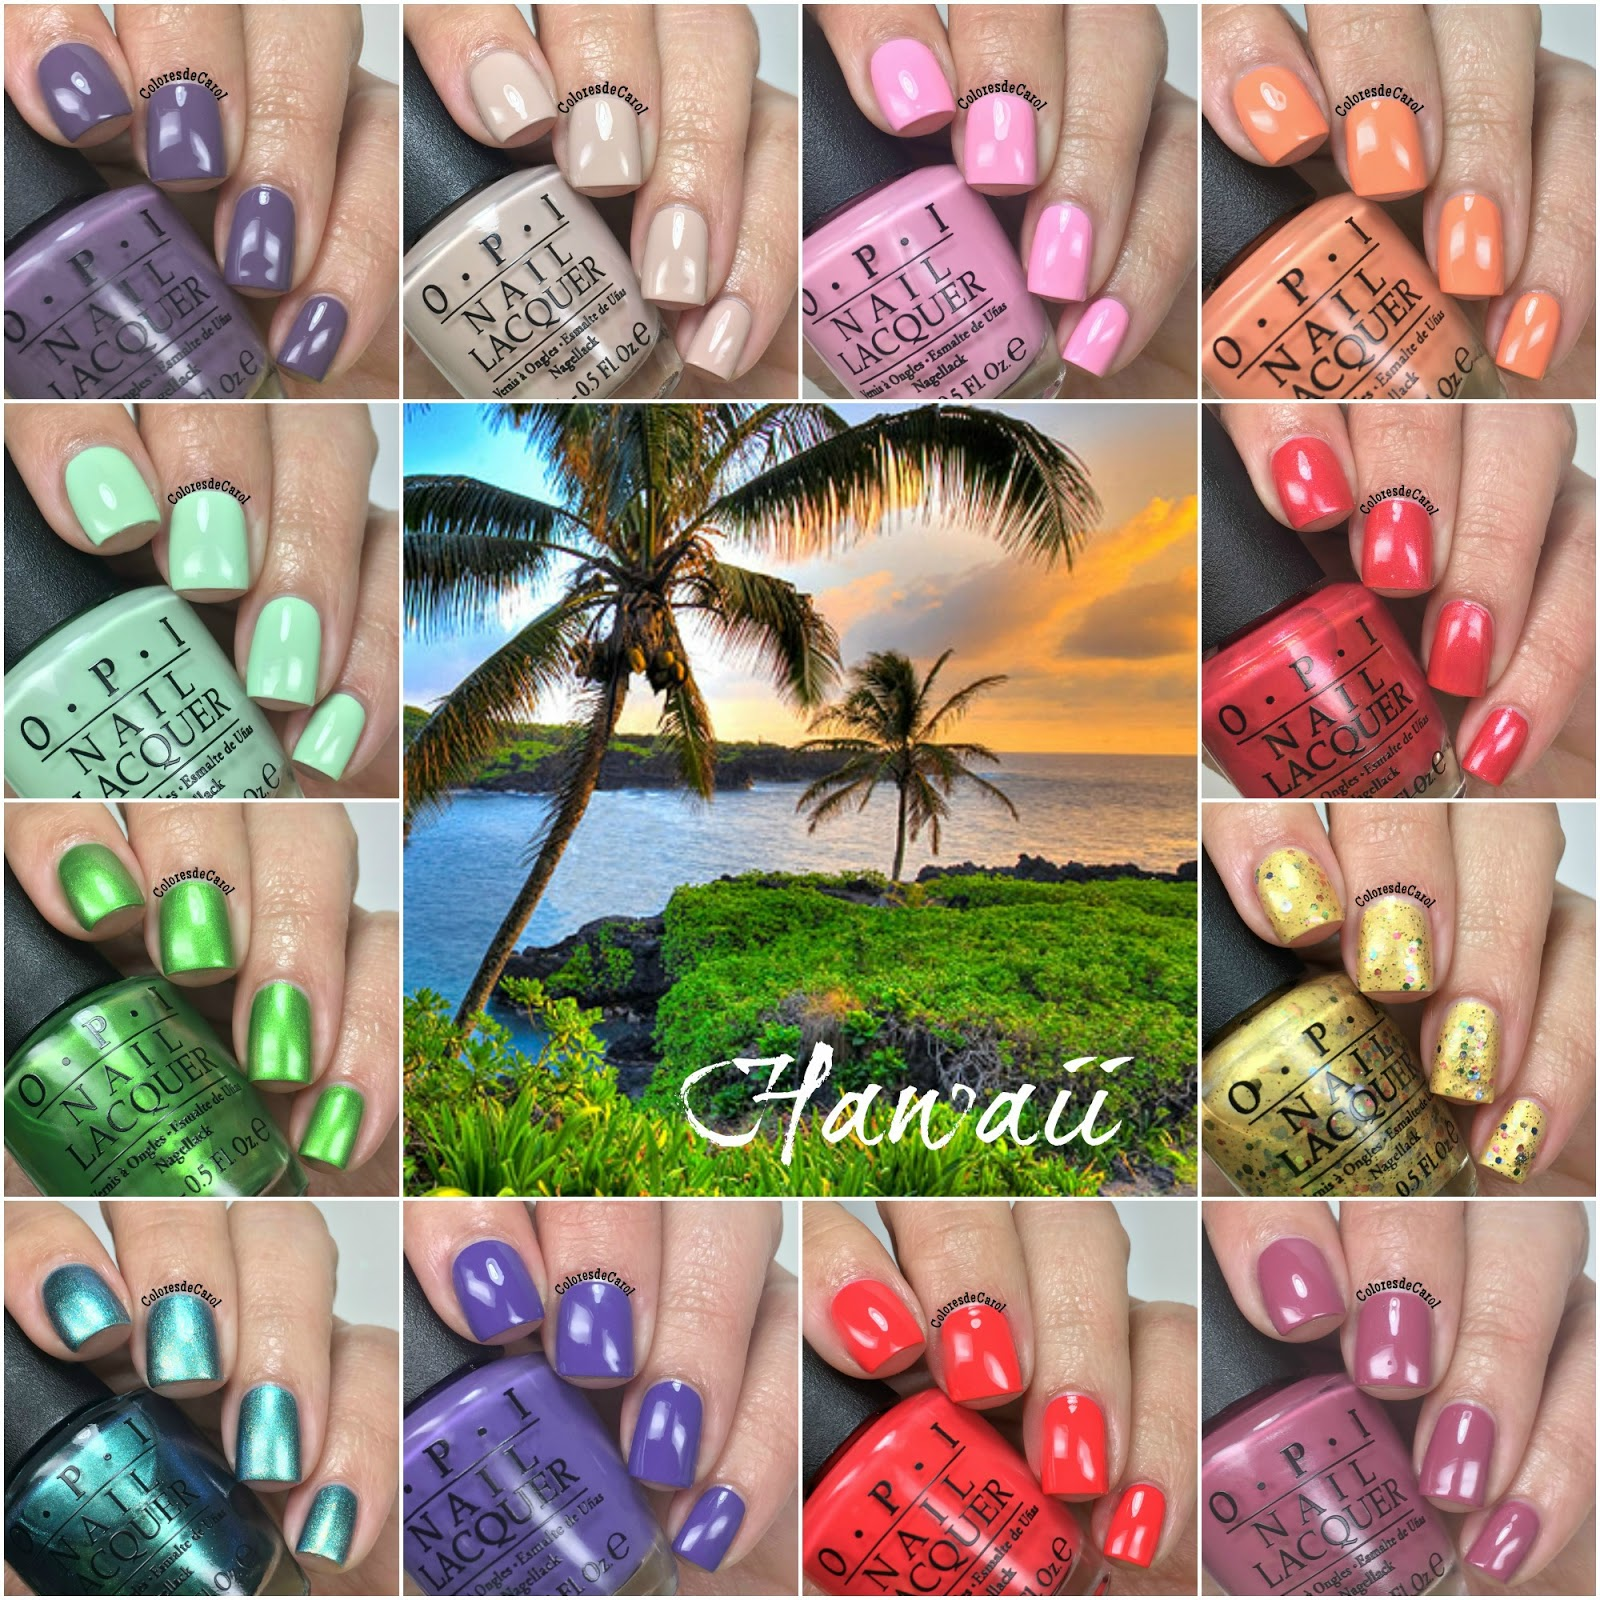 Colores de Carol: OPI Hawaii Collection, swatches and review.